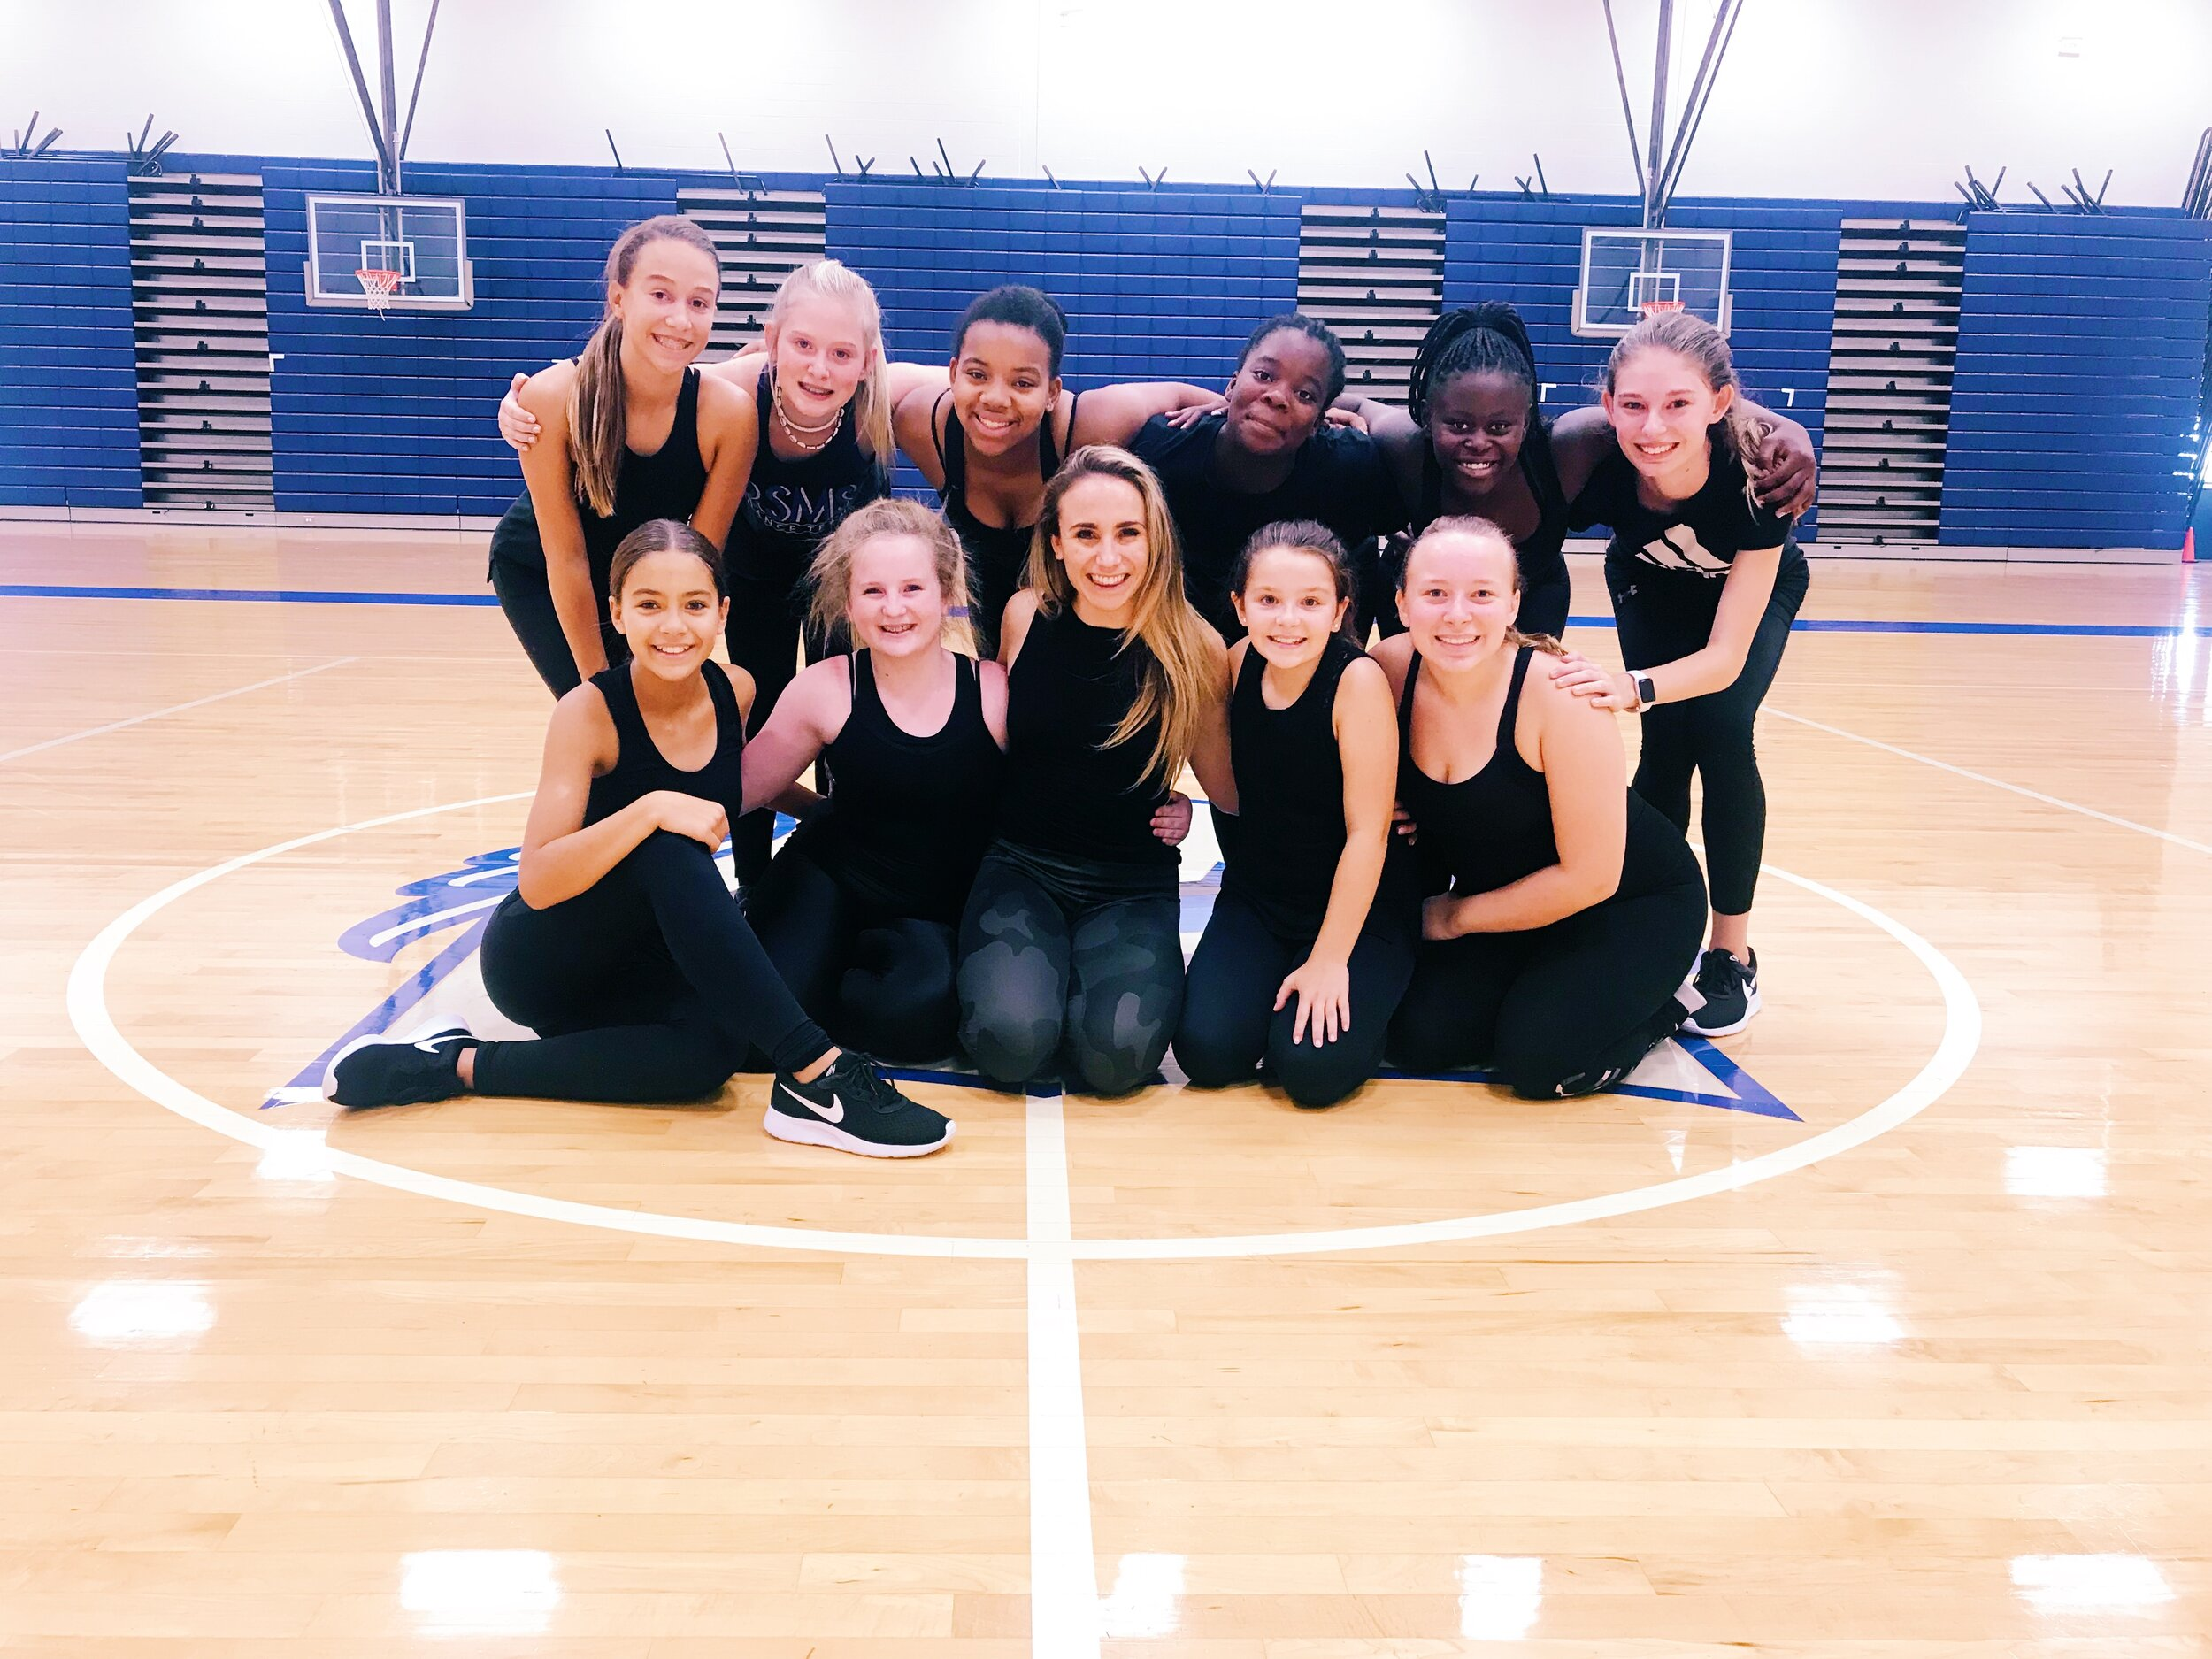 Royal Spring Middle School Dance Team